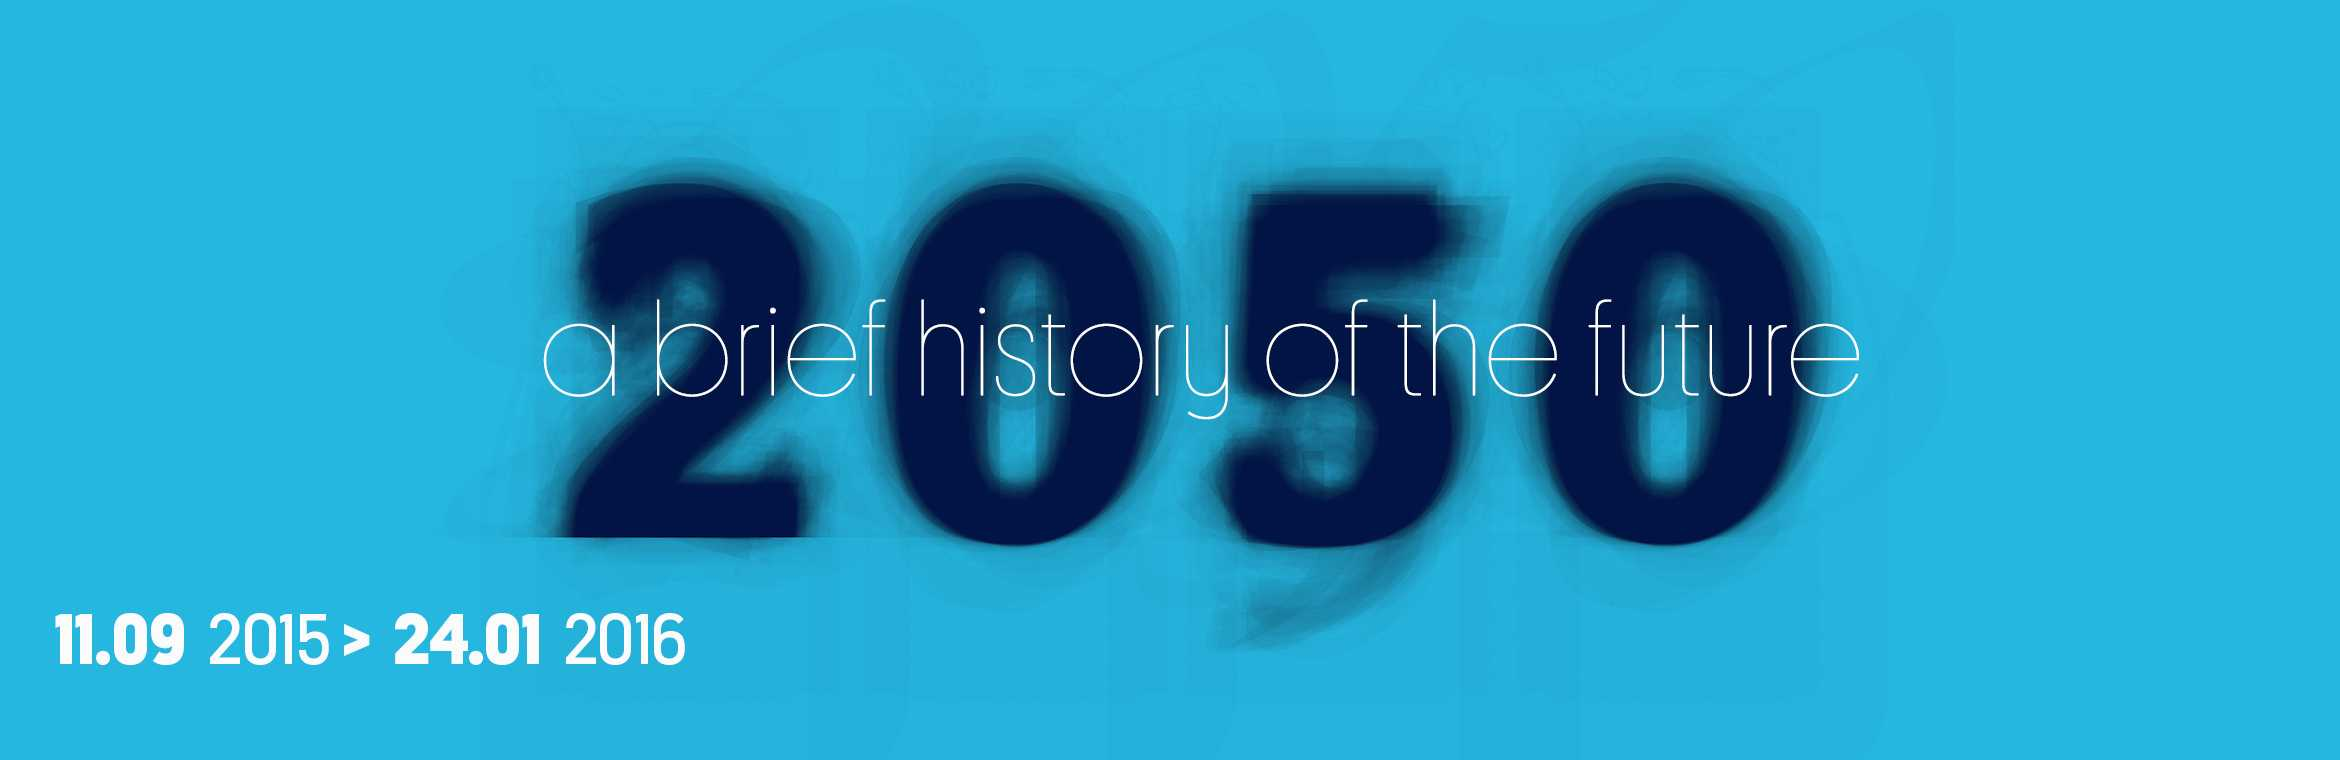 2050. A brief history of the future / 11.09 2015 > 24.01 2016